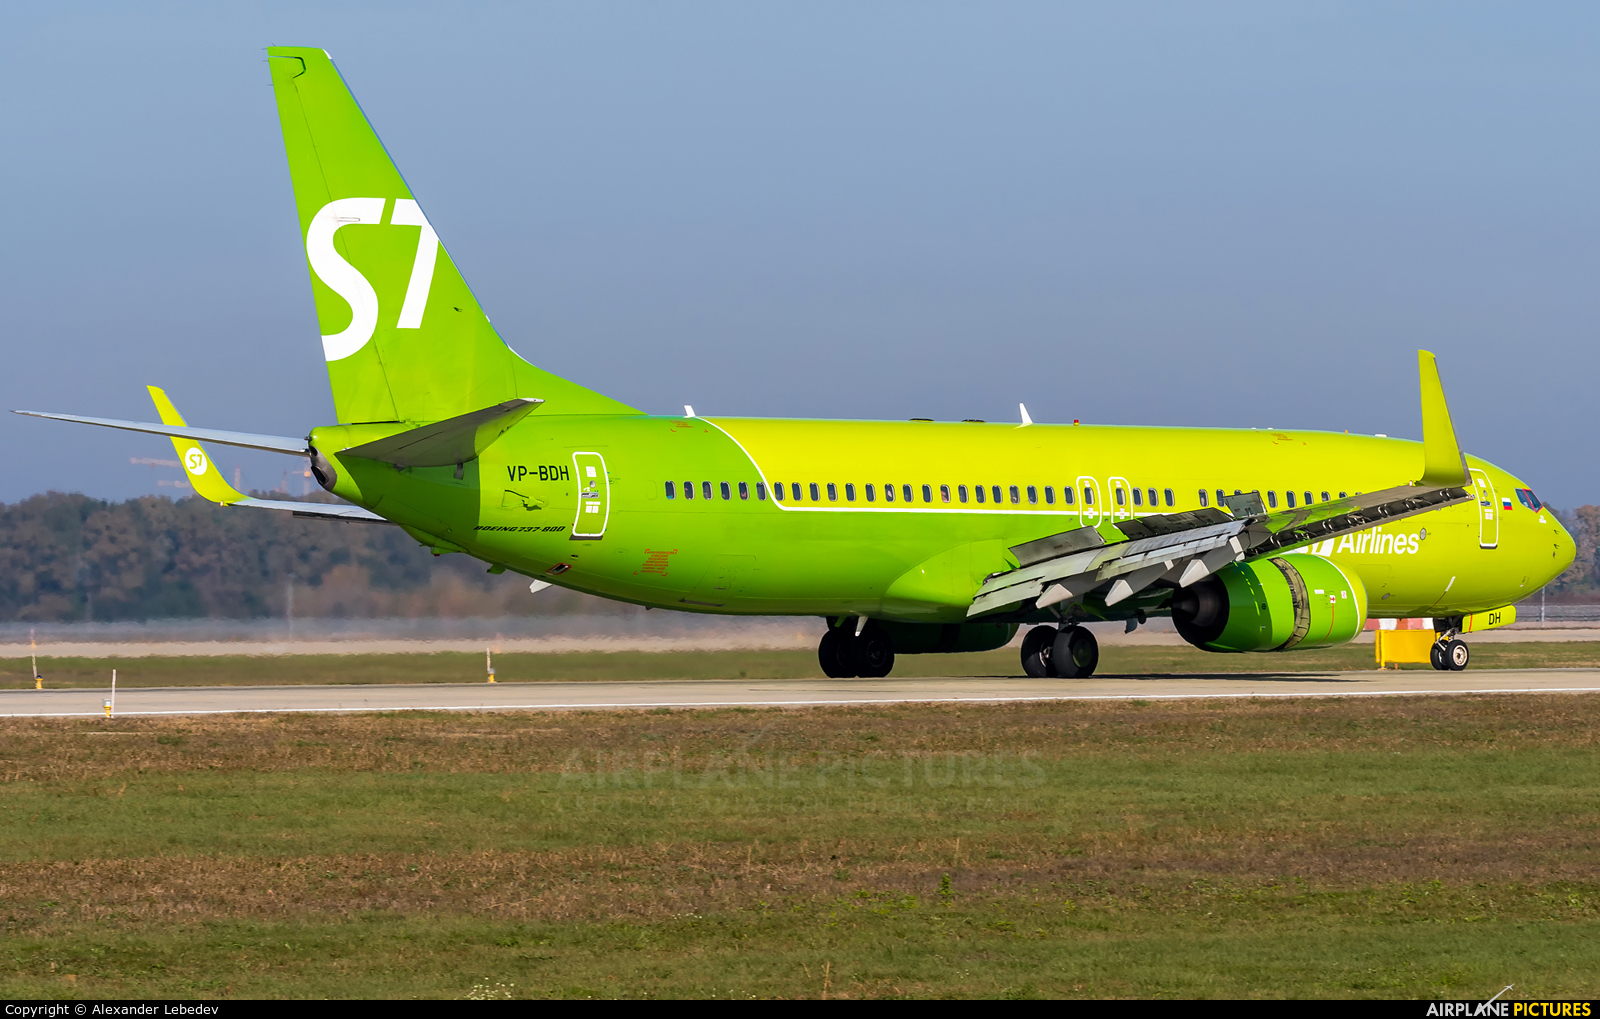 S7 Airlines VP-BDH aircraft at Krasnodar